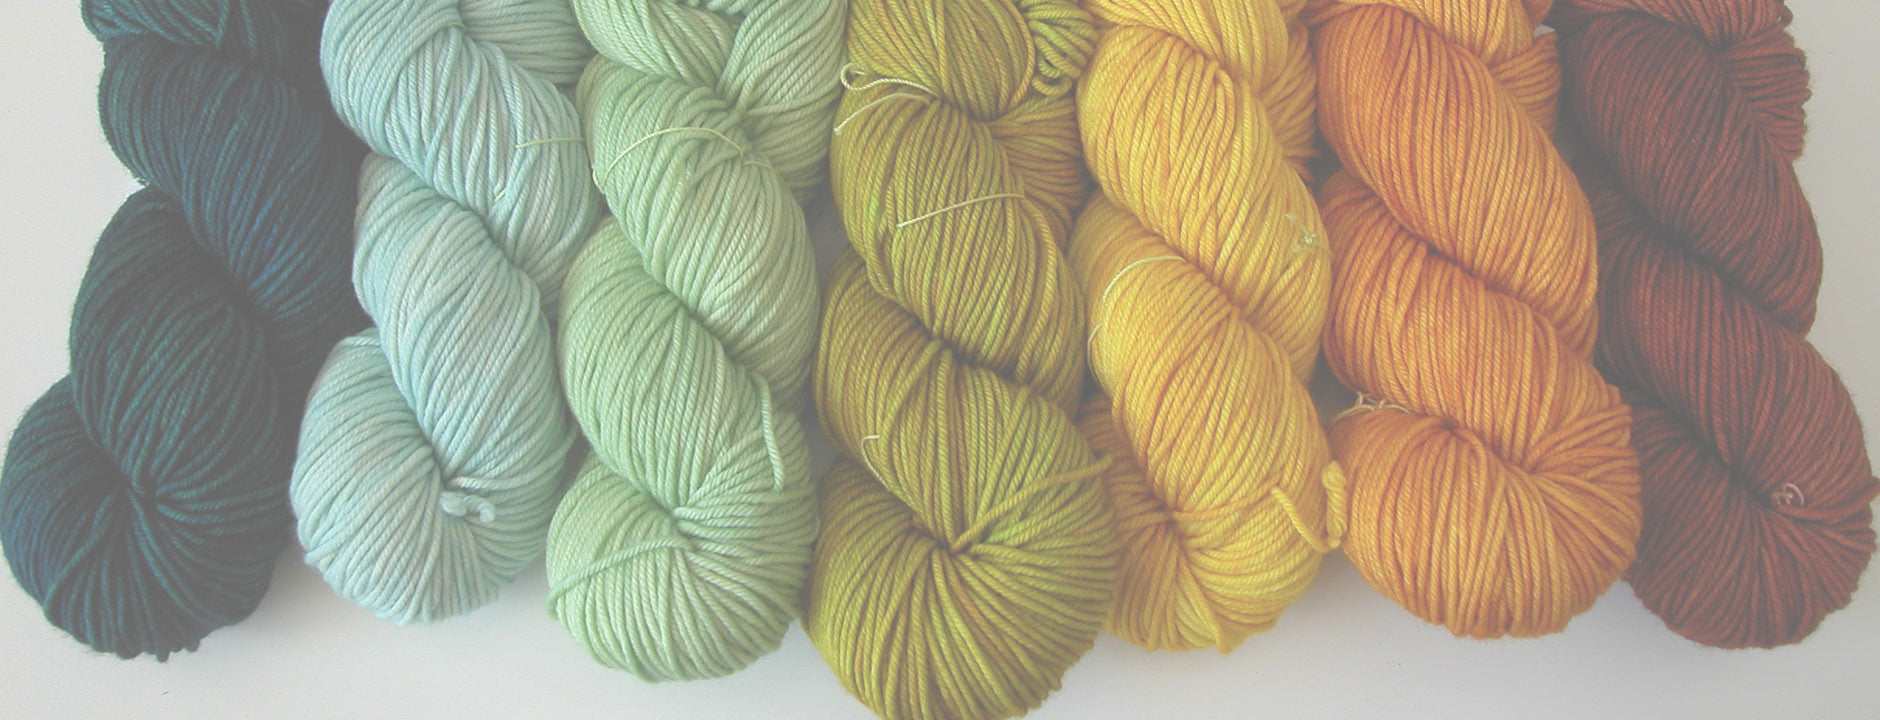 High Quality Yarns at 3 Wild Sheep